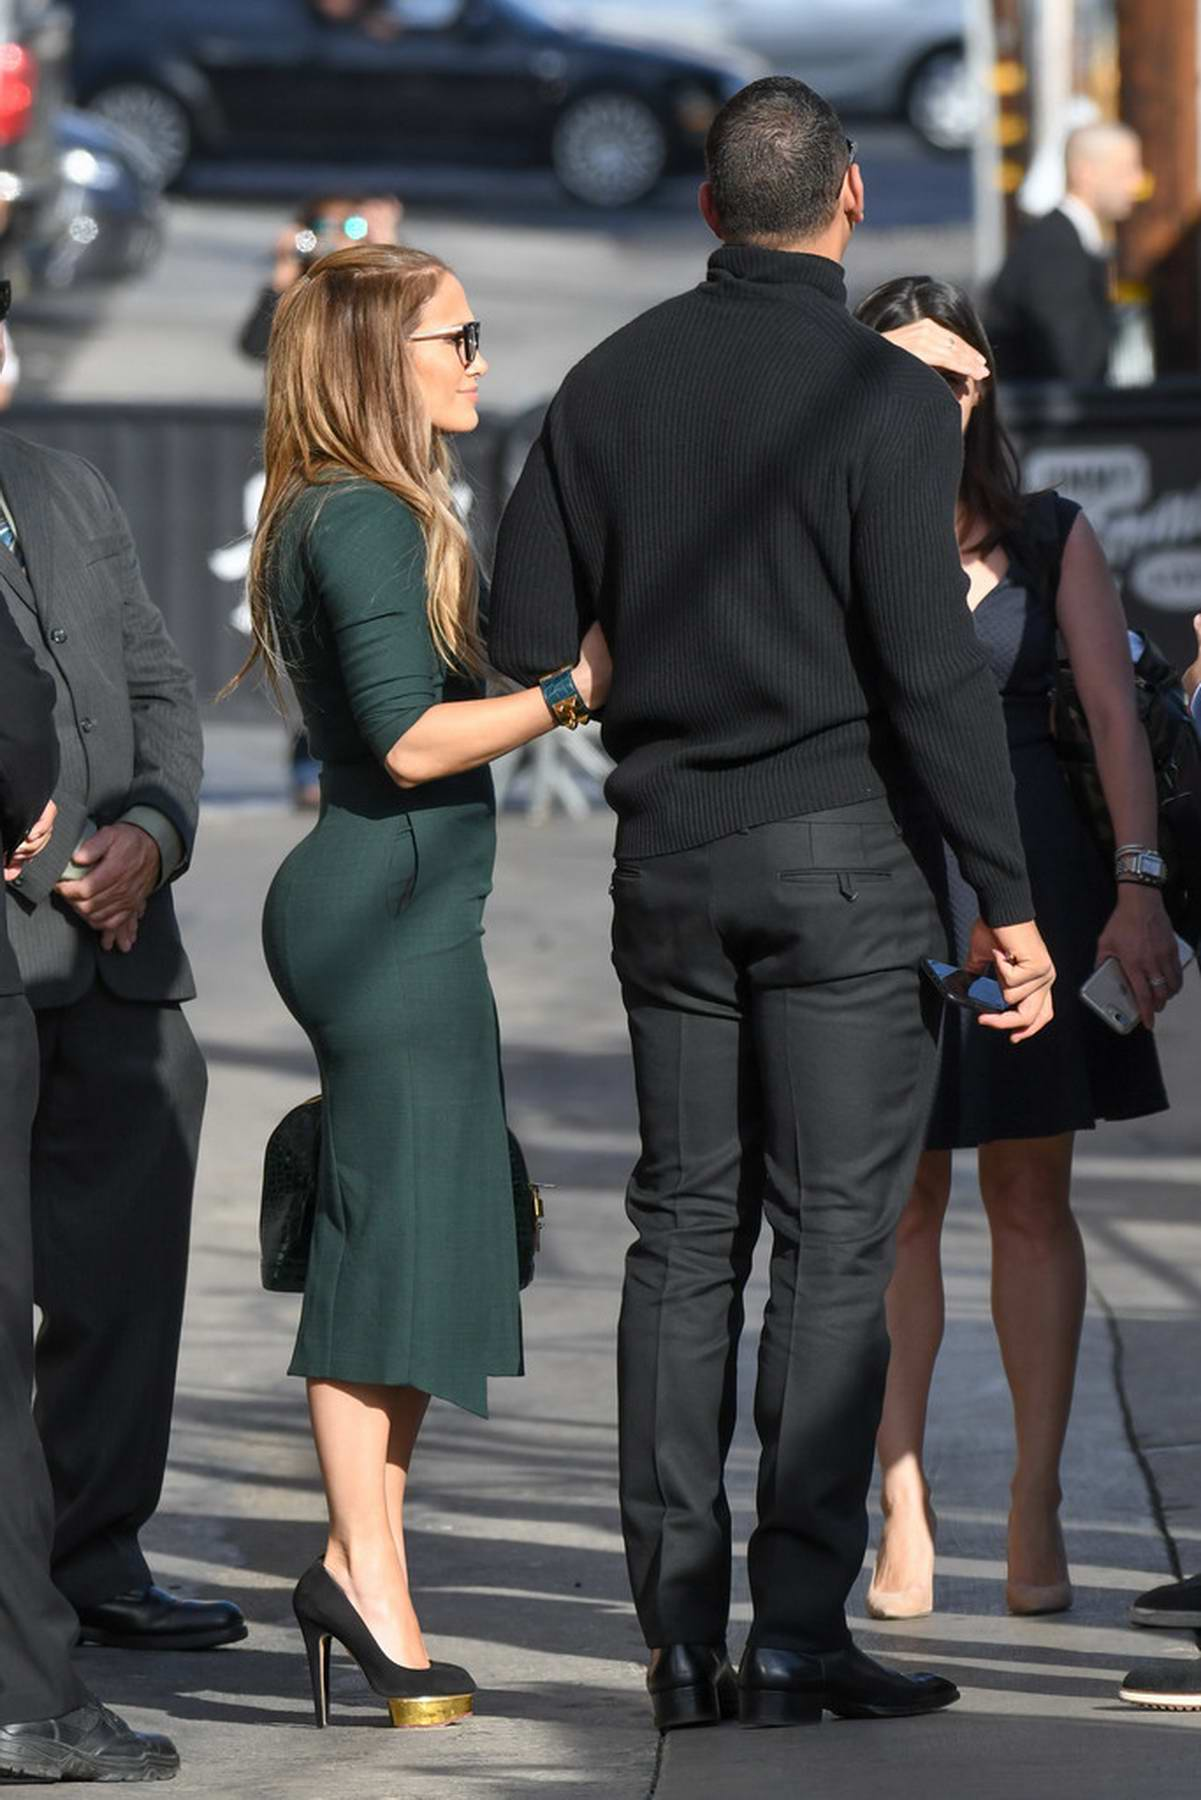 Jennifer Lopez and Alex Rodriguez are seen visiting Jimmy Kimmel Live in Hollywood, Los Angeles